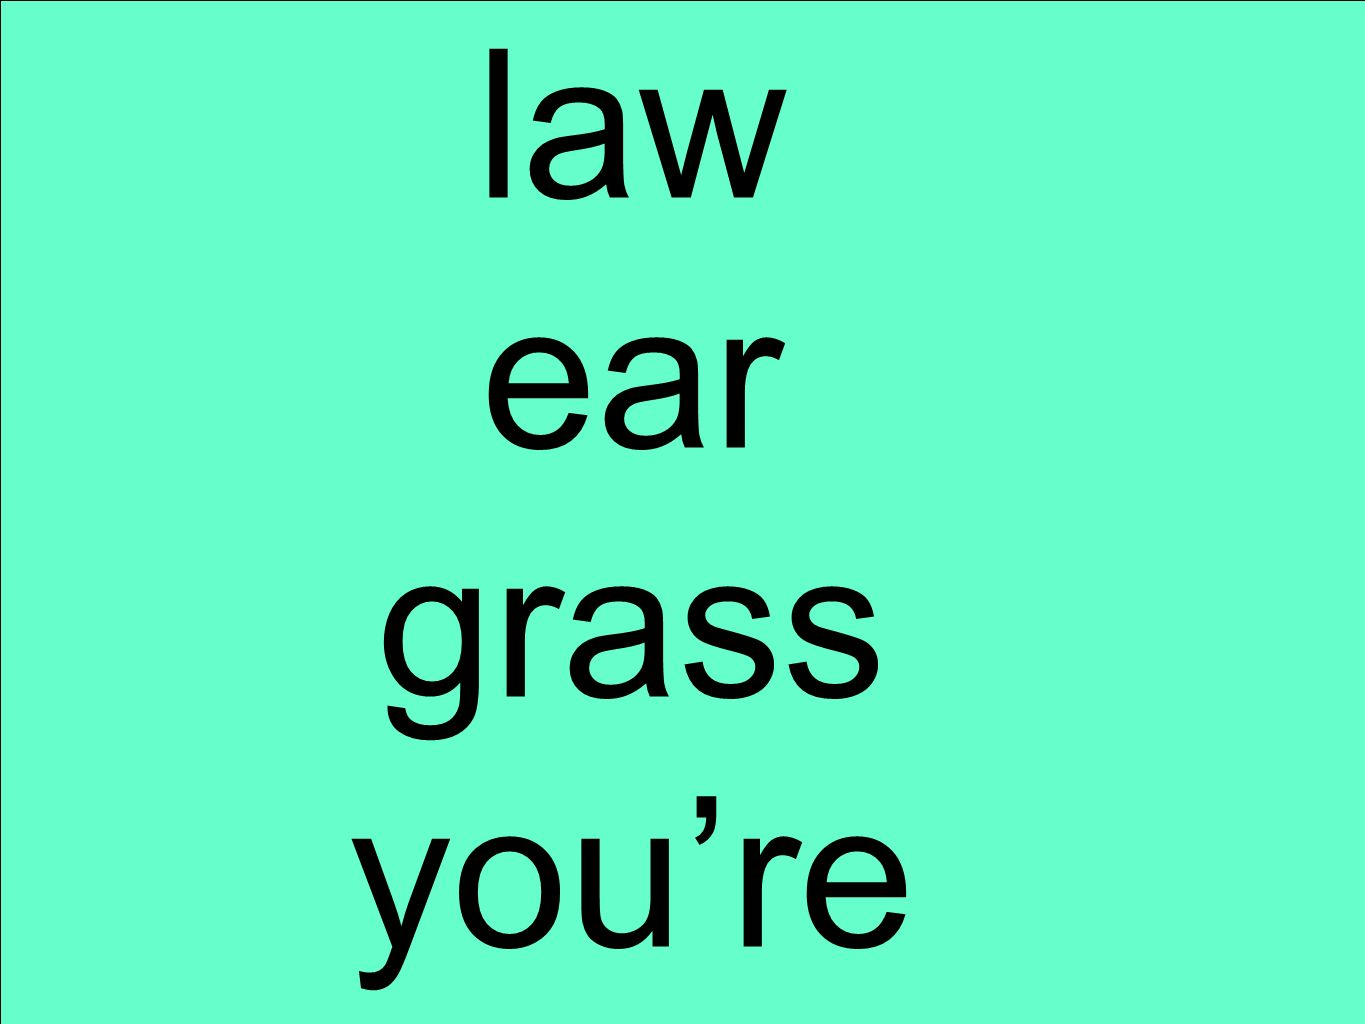 law ear grass you're